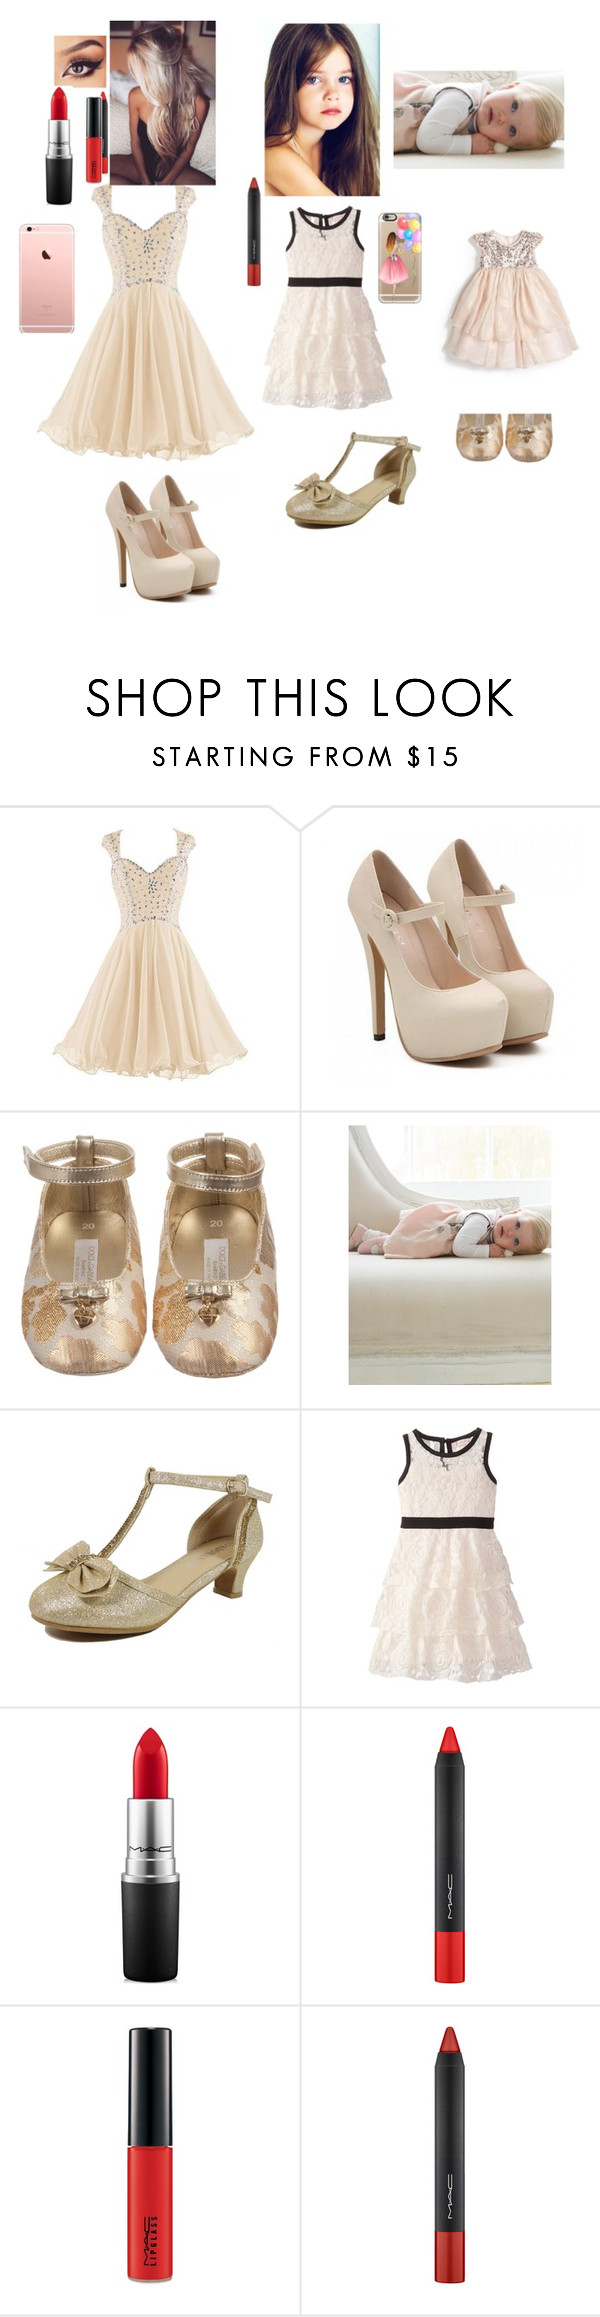 """""""Sem título #938"""" by leonnorgonzalez ❤ liked on Polyvore featuring Dolce&Gabbana, Pink Tartan, Pippa, Appaman, MAC Cosmetics and Casetify"""